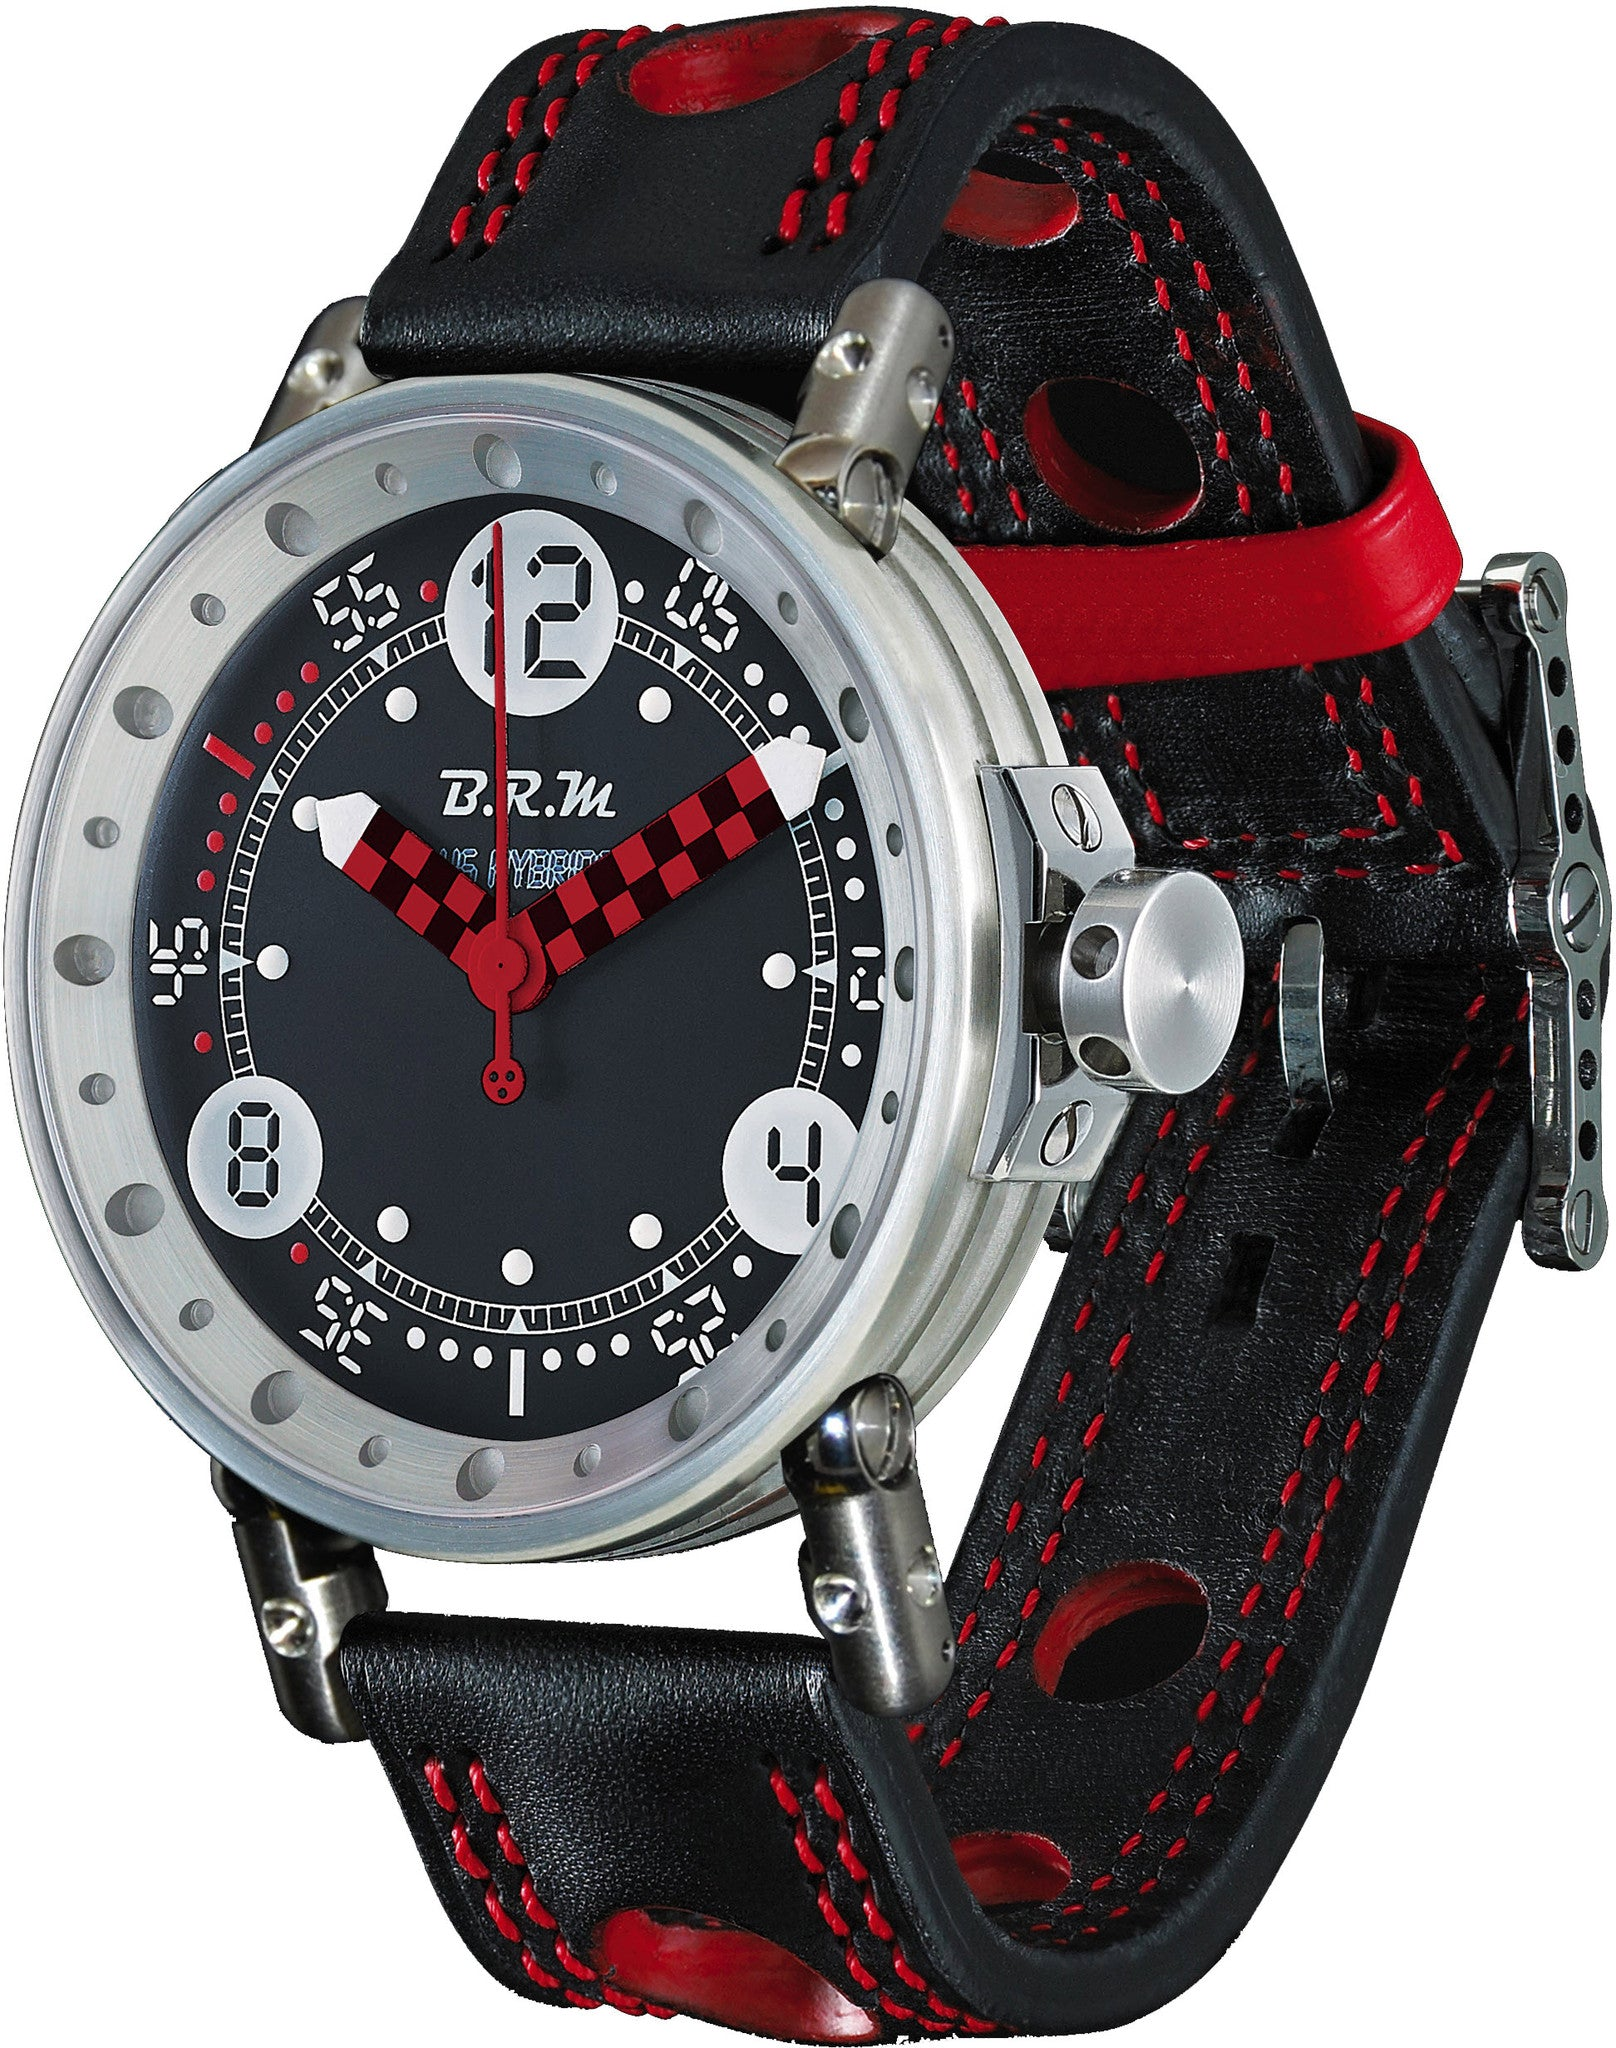 B.R.M Watch V6-44 HB Red Hands